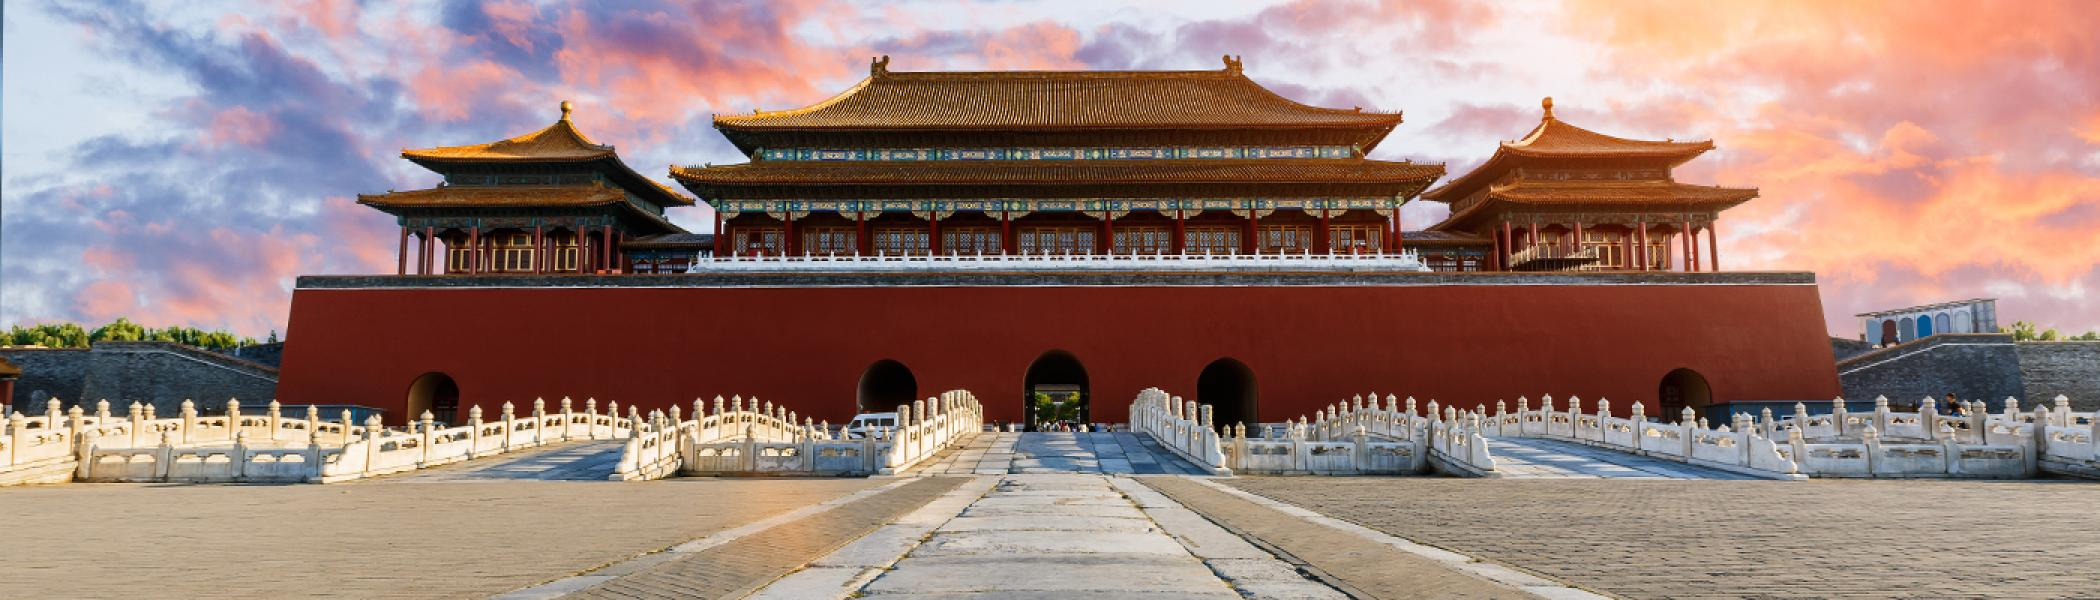 chinese traditional building studied by anthropology students